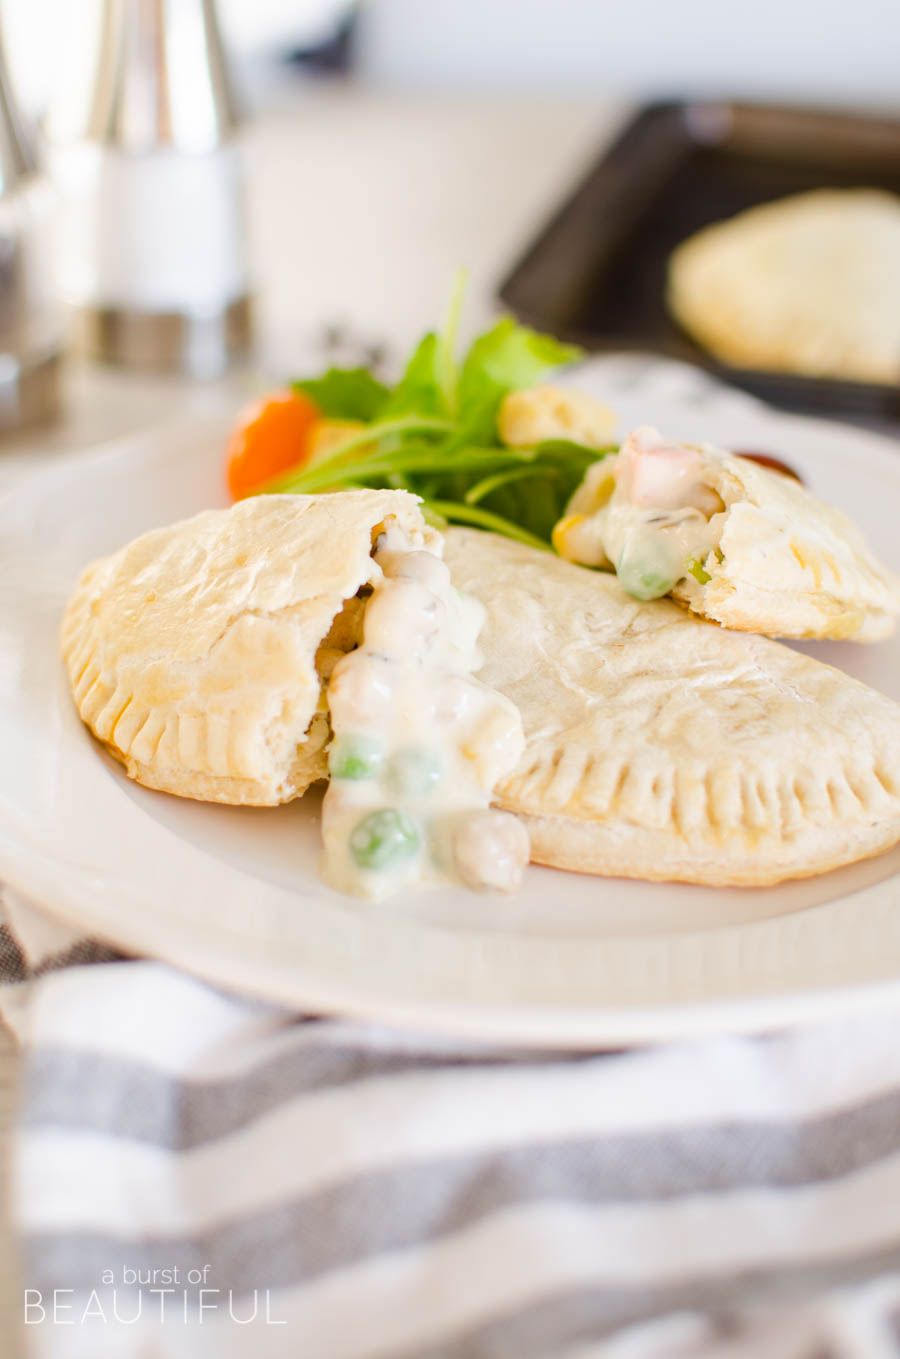 Vegetarian pot pies are a simple and healthy weeknight meal, the addition of chickpeas is a satisfying alternative to chicken | A Burst of Beautiful